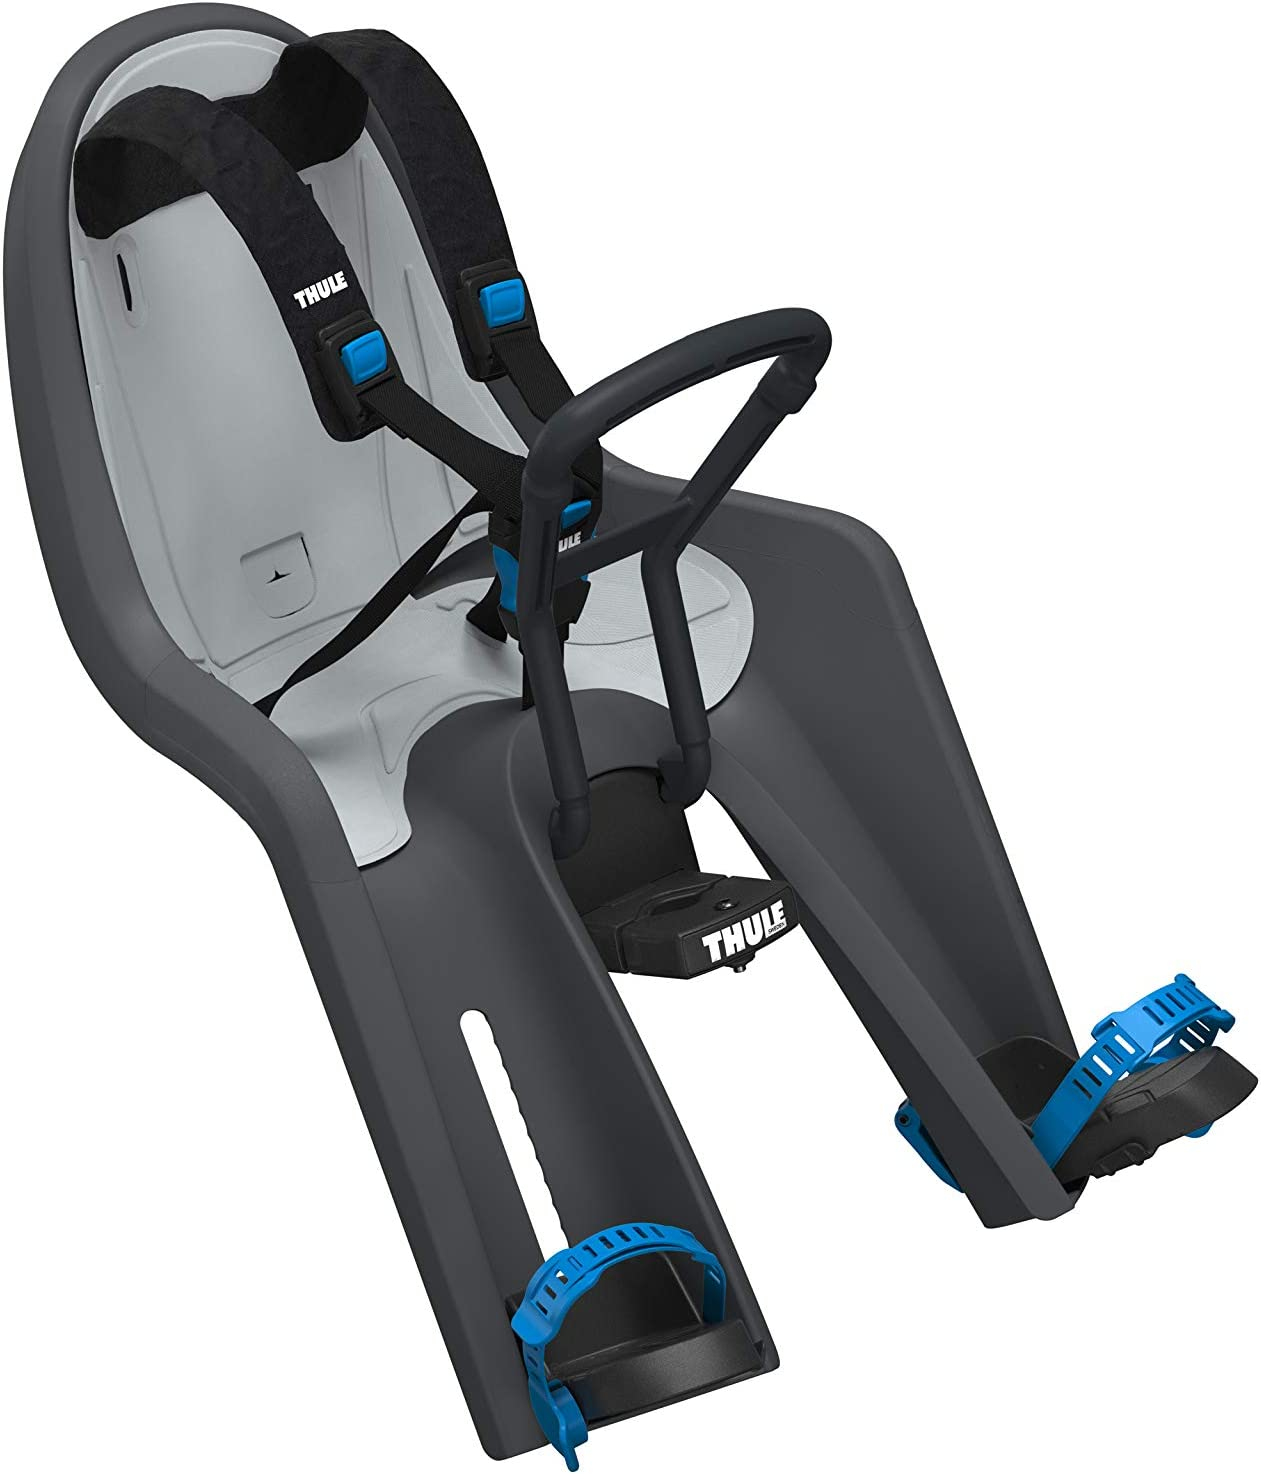 Top 14 Best Kid Seat For Bikes (2020 Reviews & Buying Guide) 2